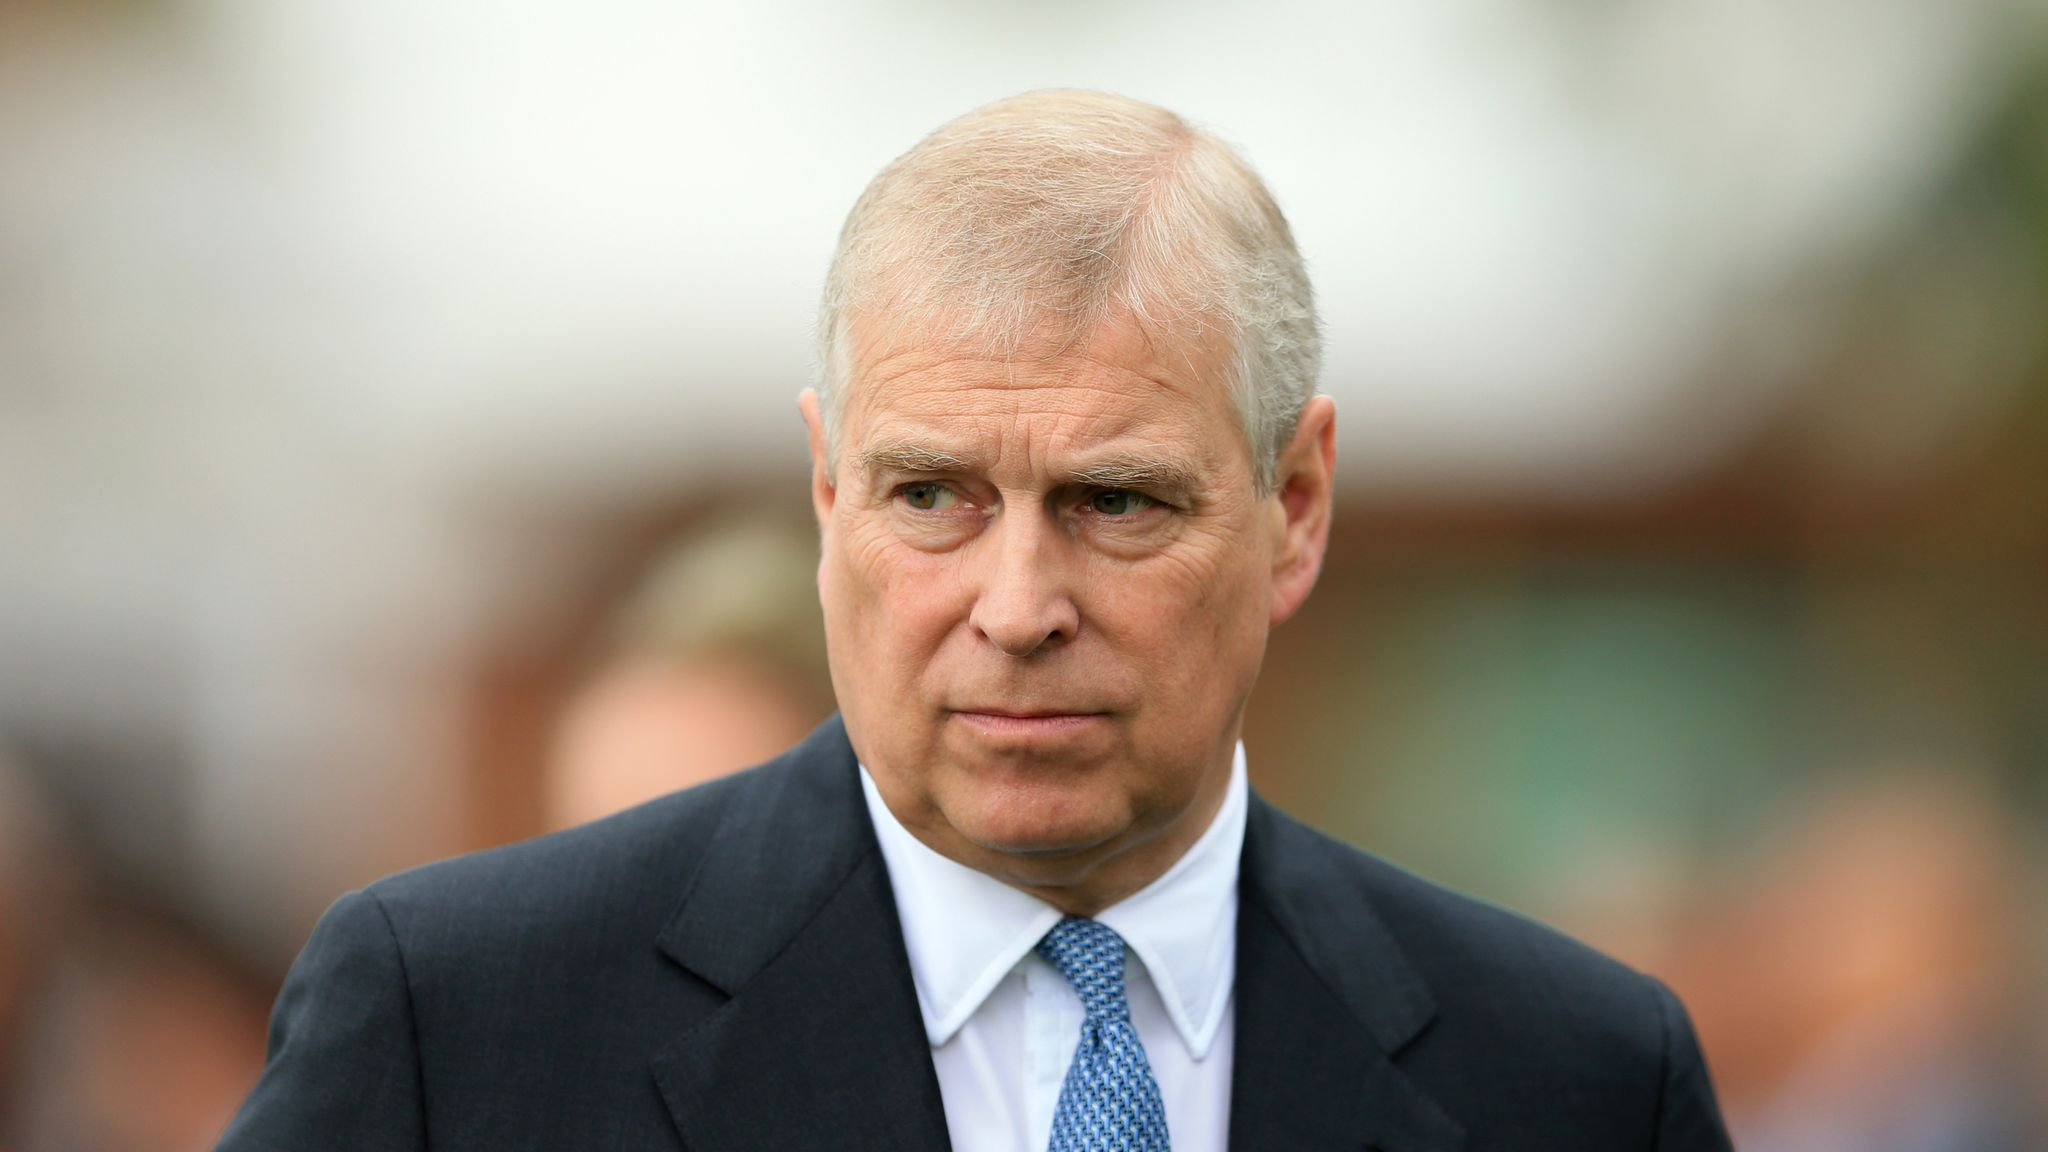 A spokeswoman for the duke has confirmed there is a dispute